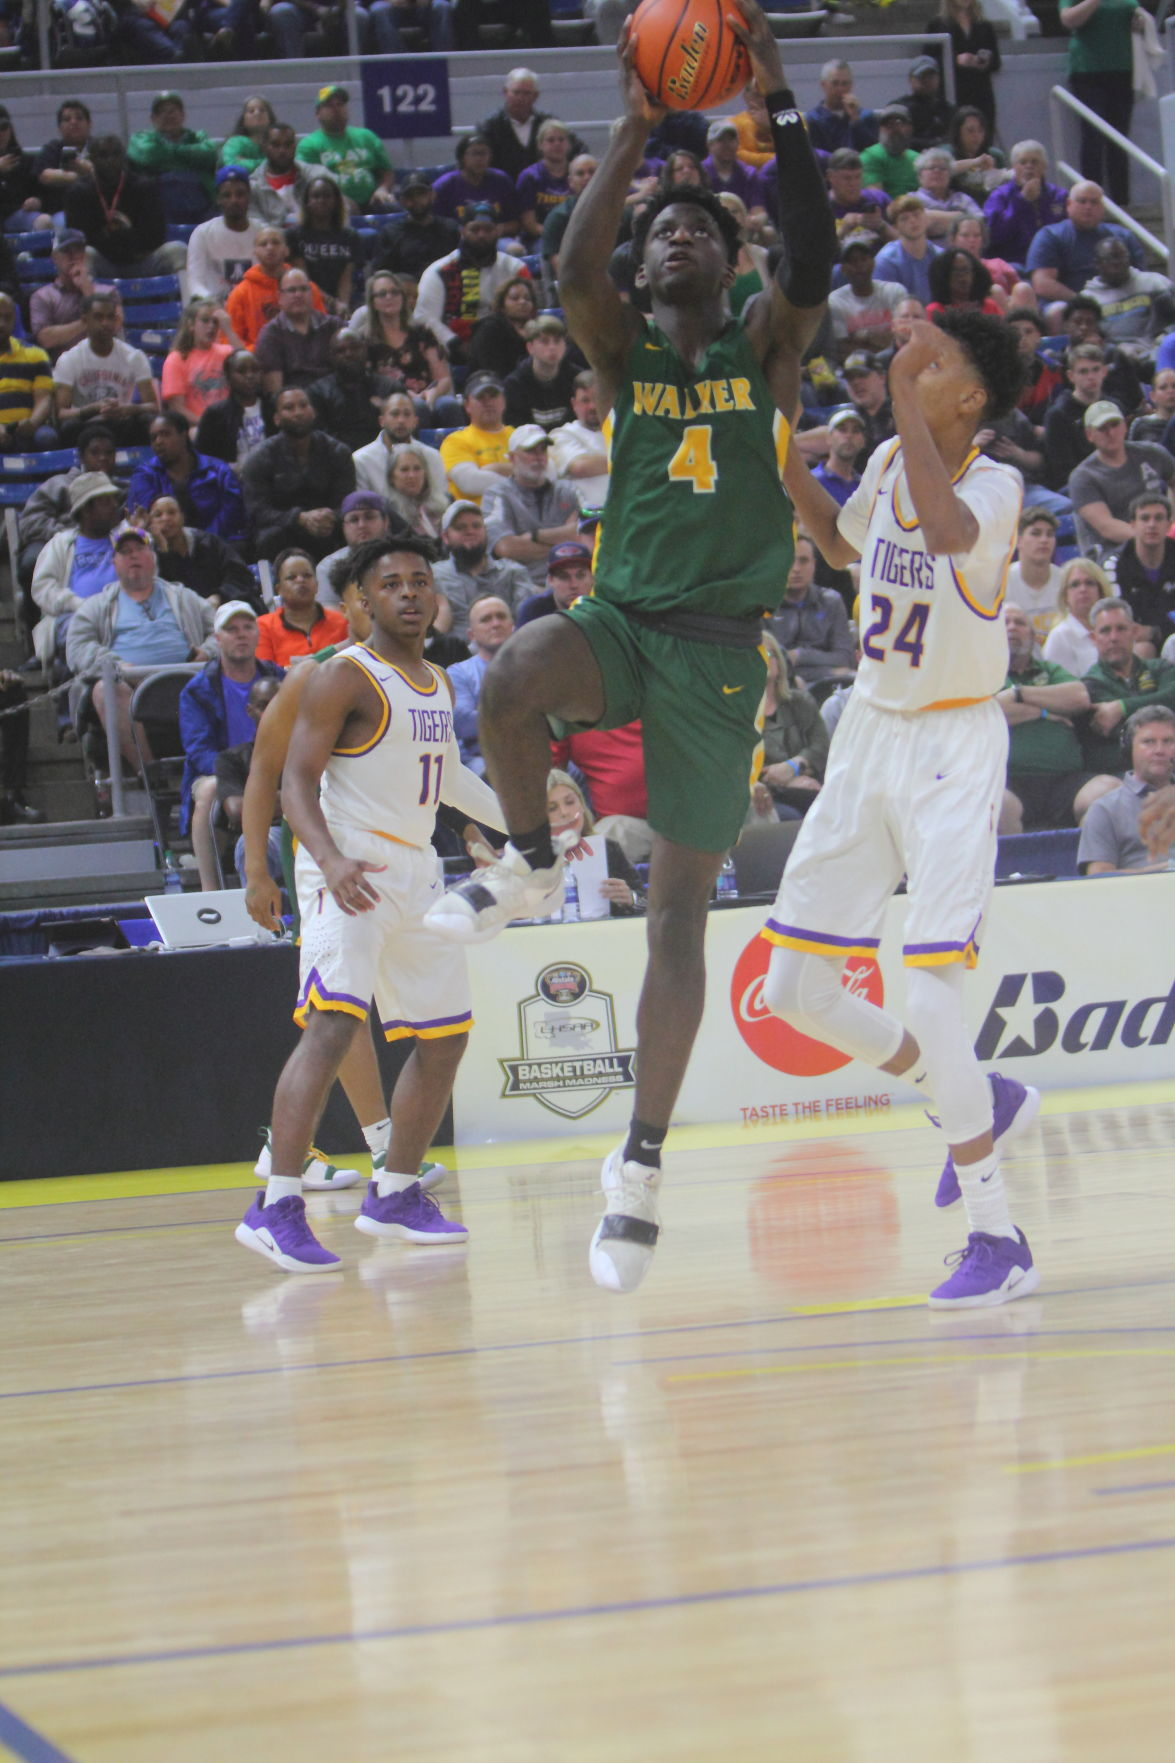 Walker vs Thibodaux boys basketball  Brian Thomas